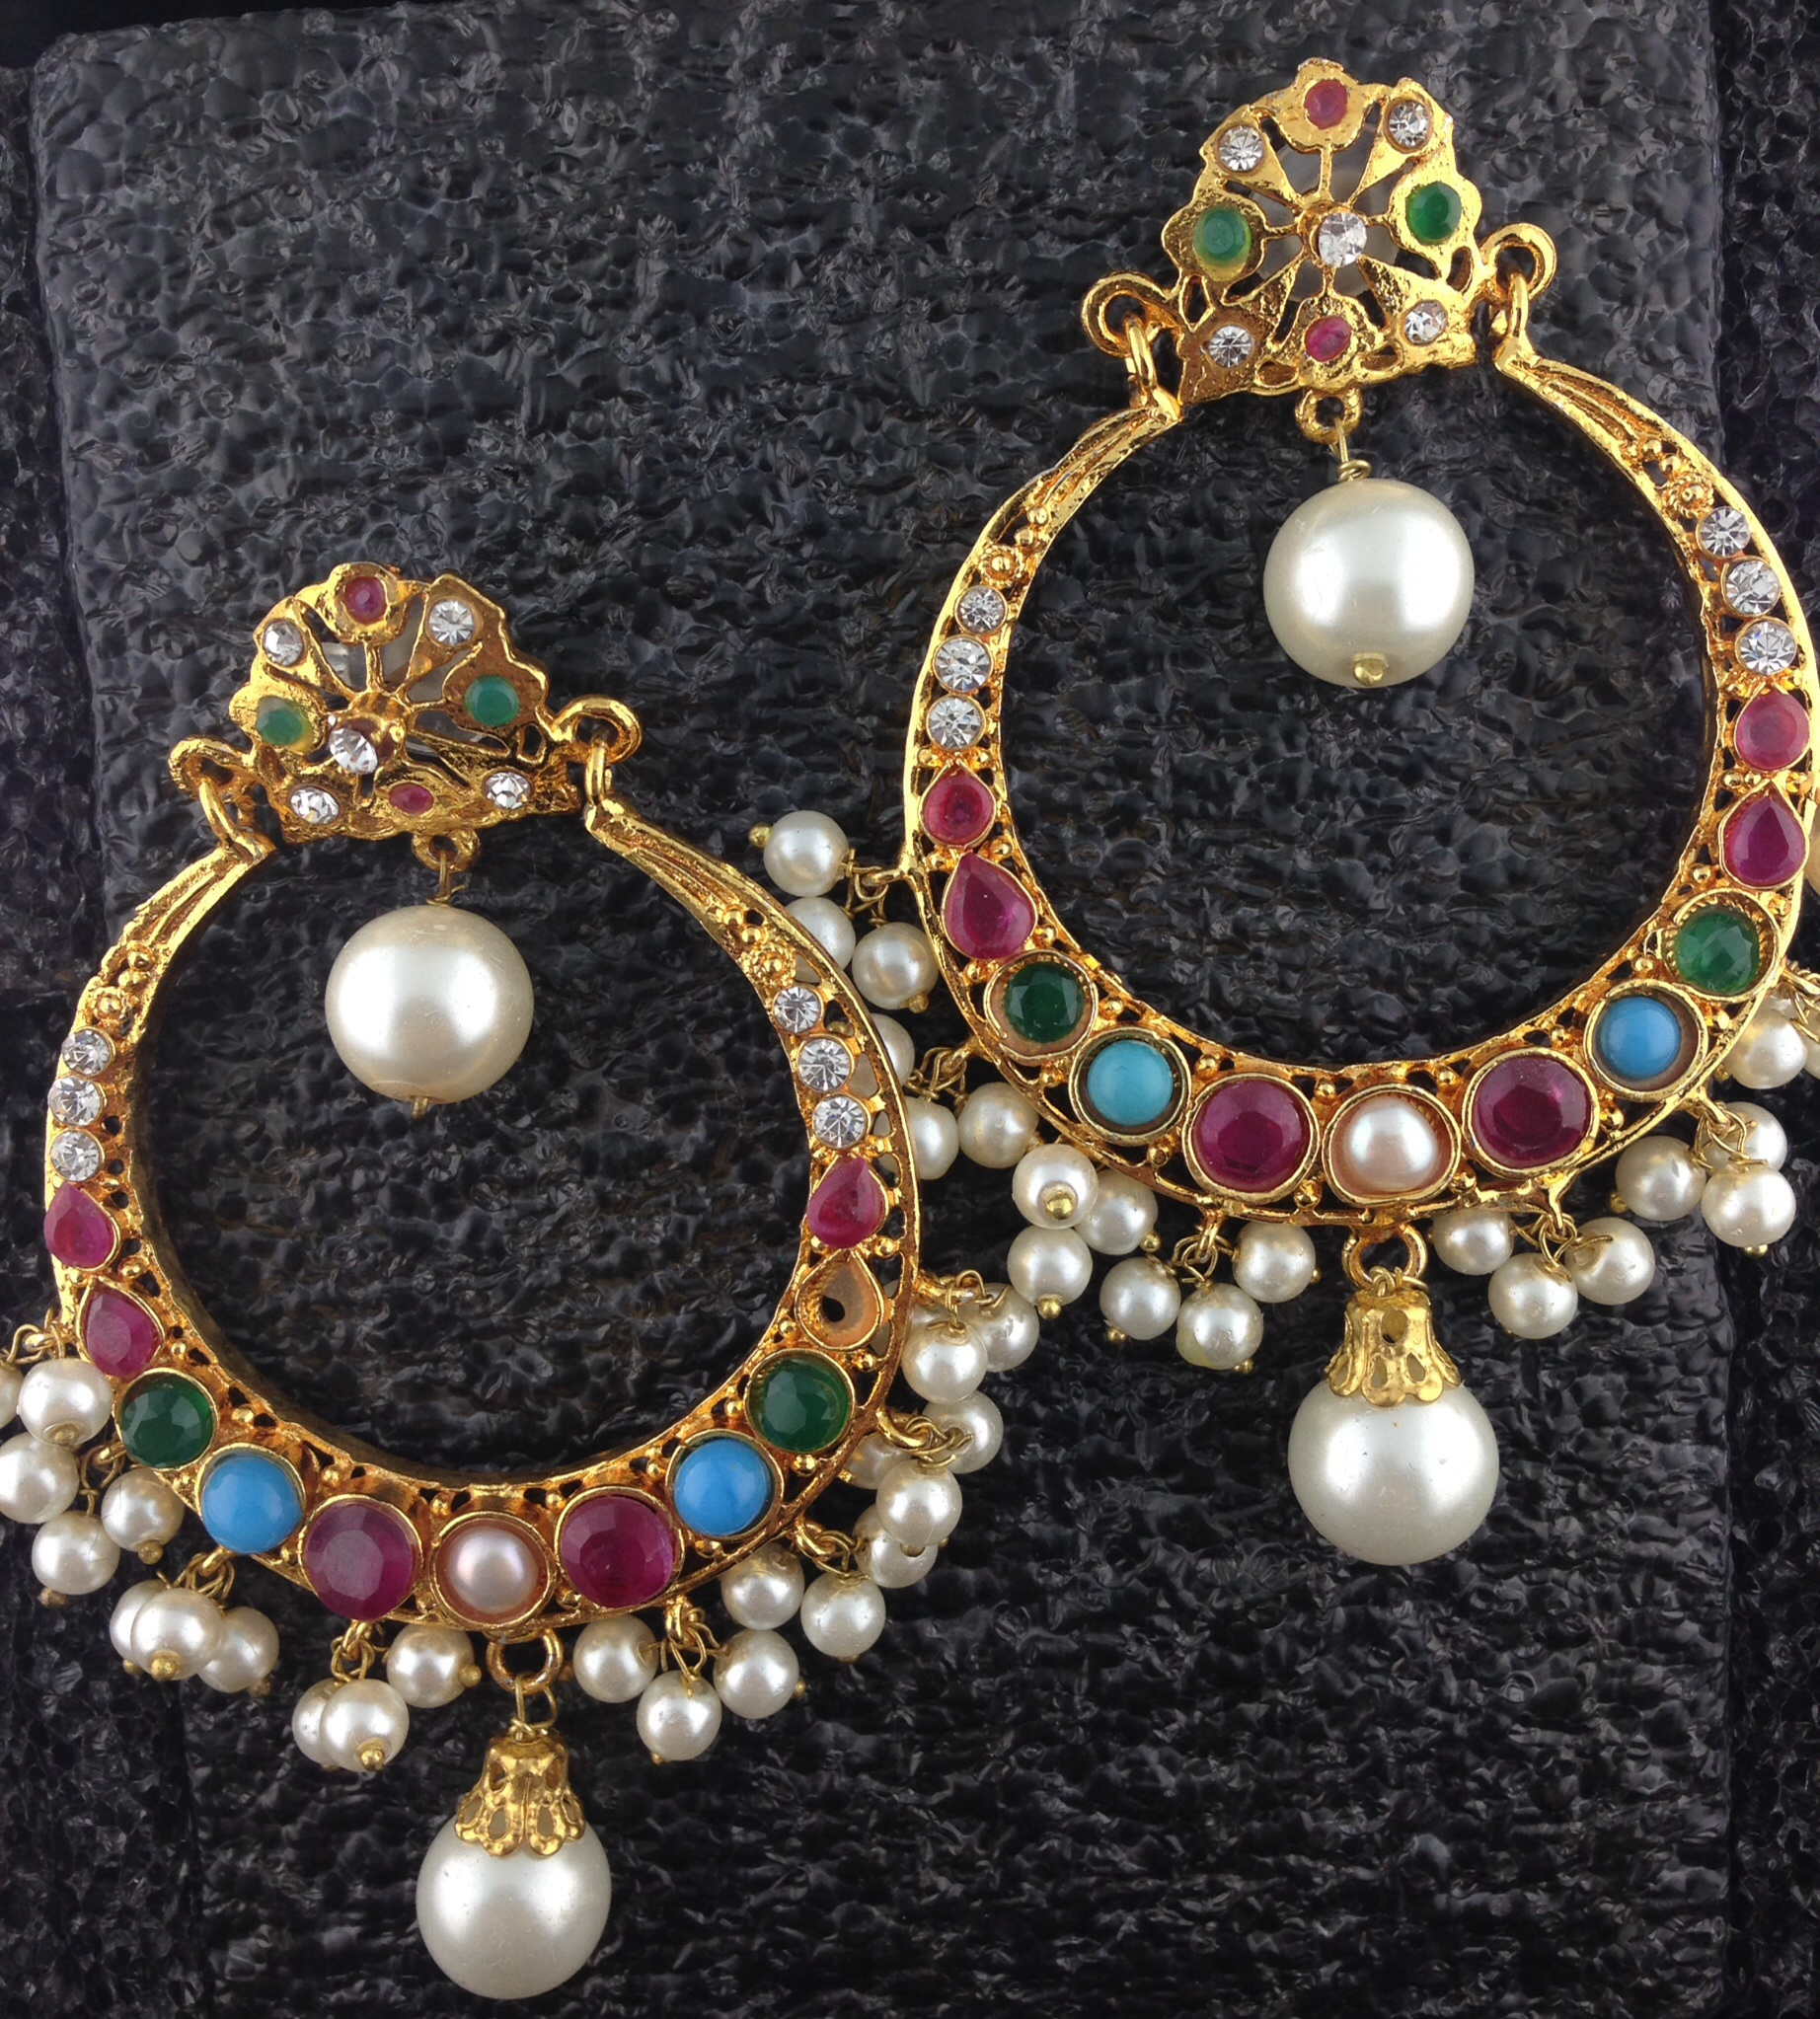 Chand Bali Multicolored Kundan Earrings With Pearls.